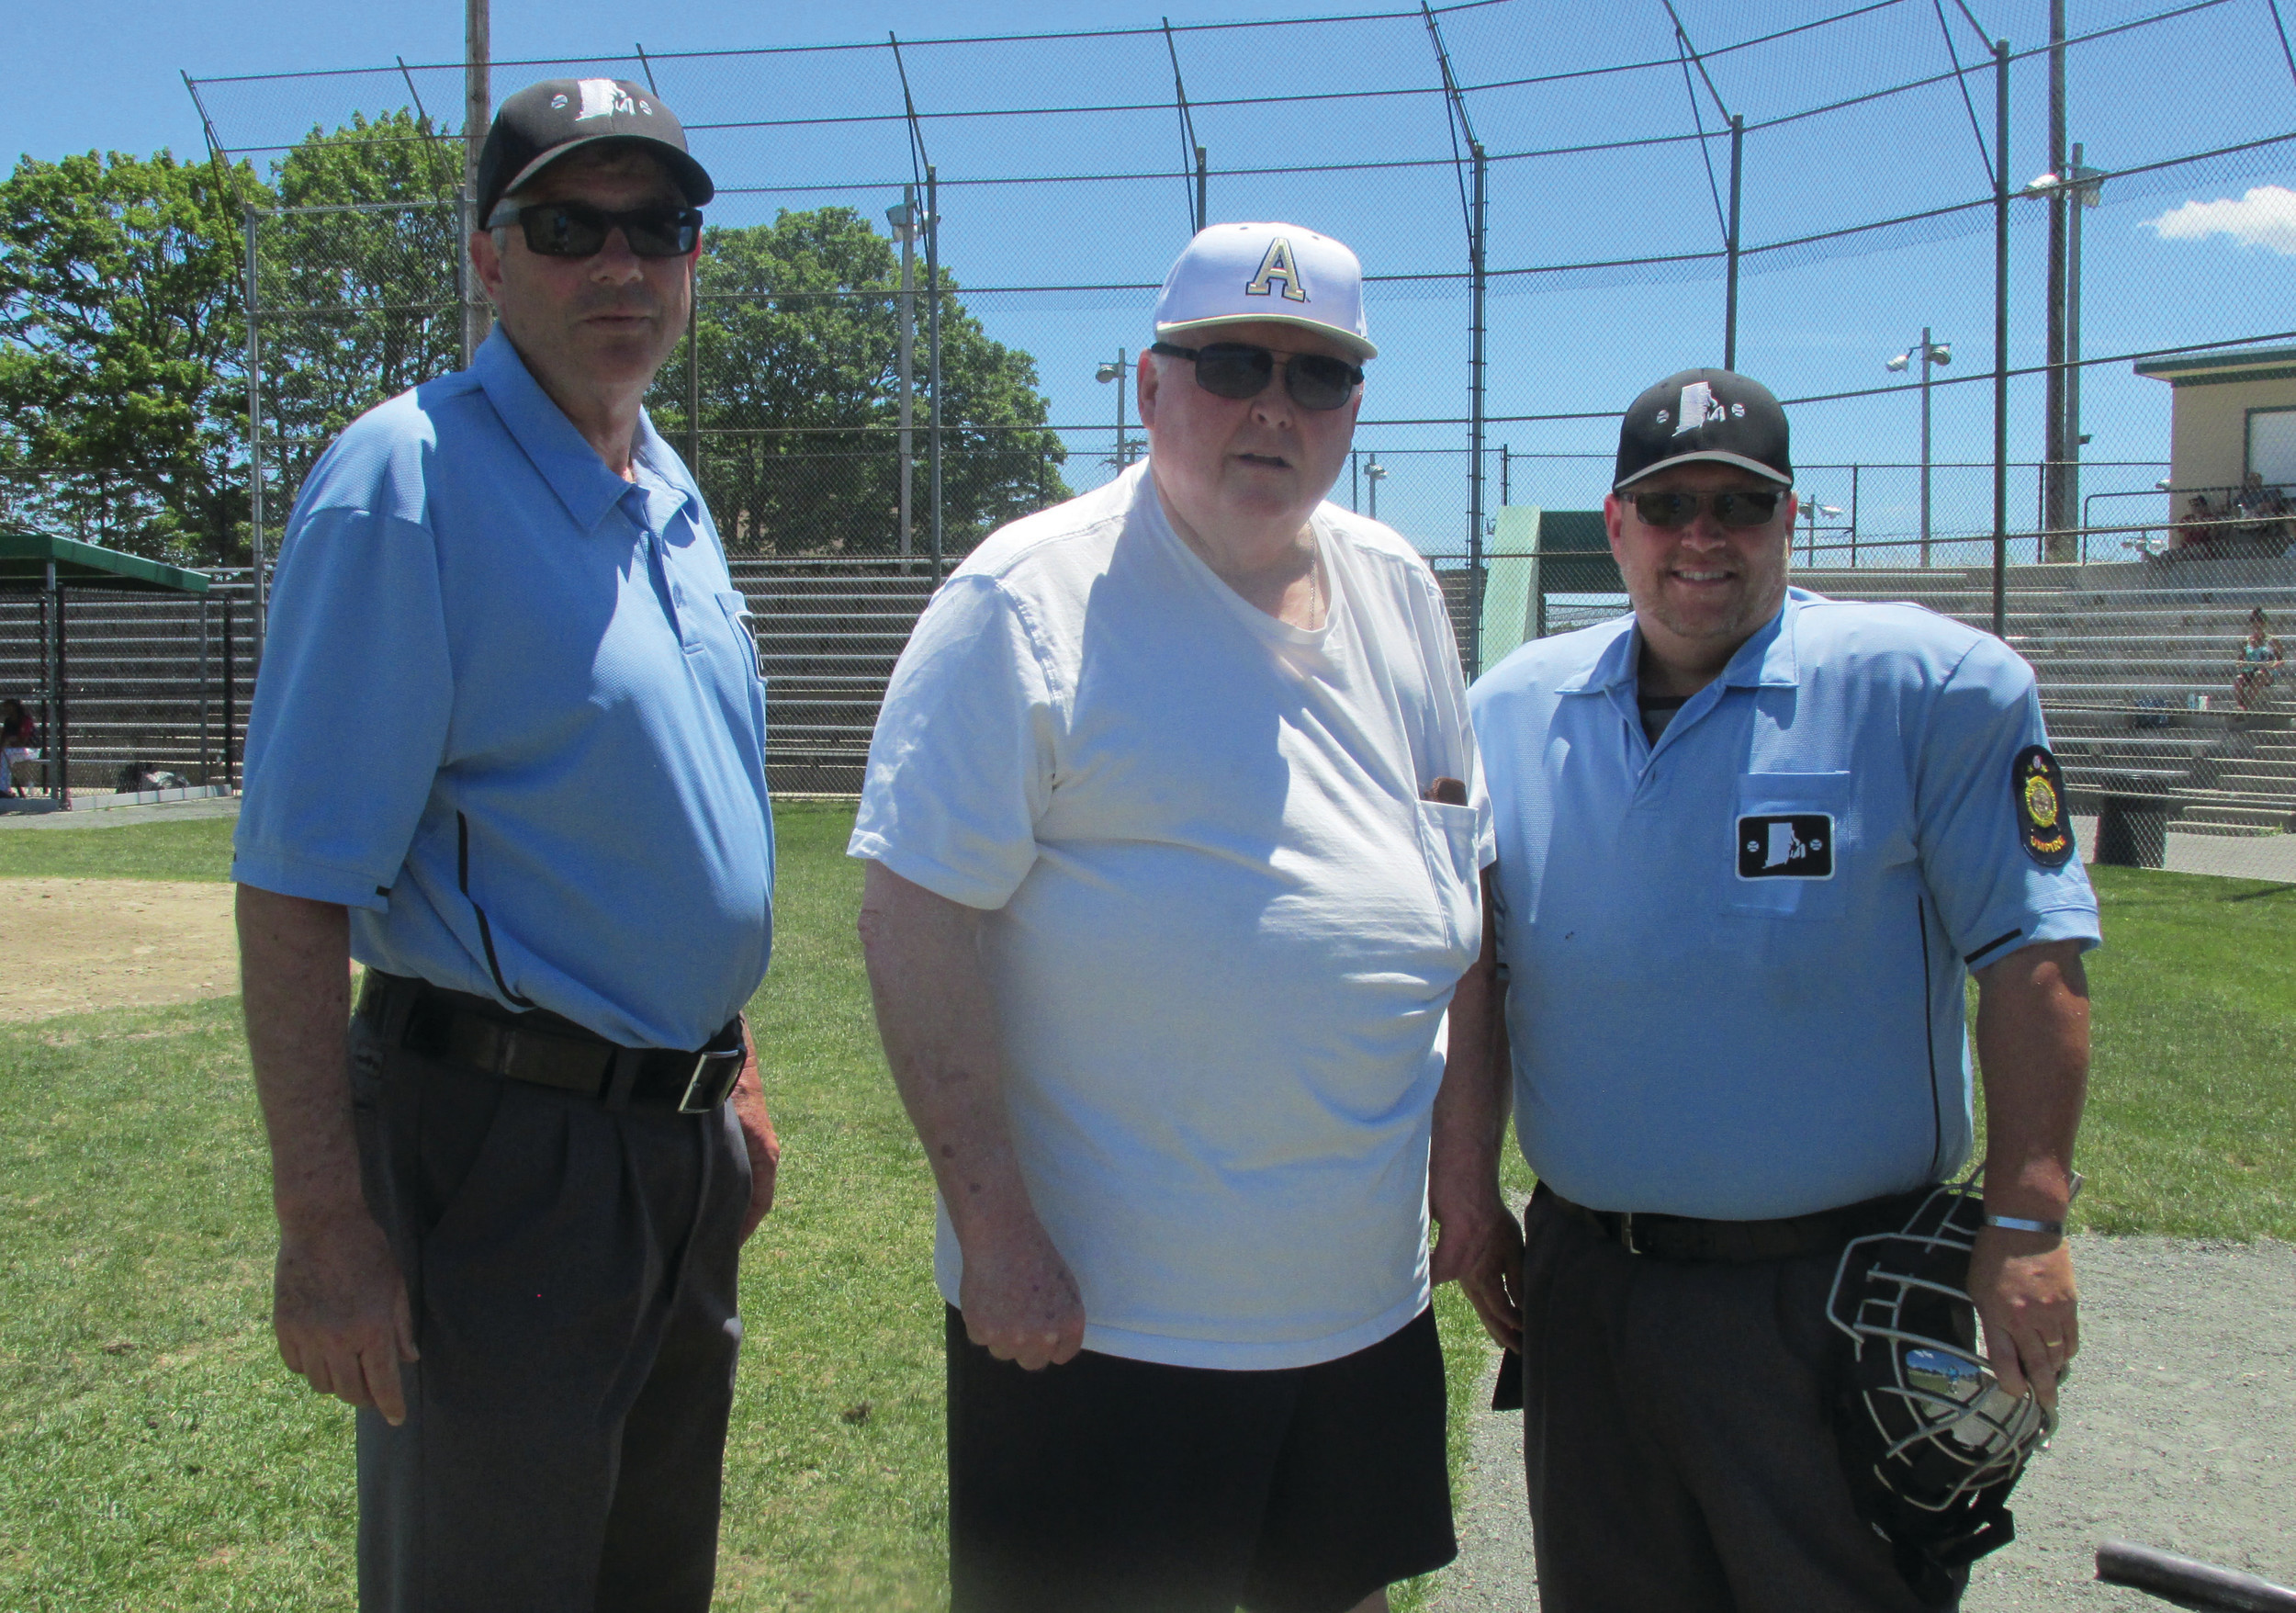 OUTSTANDING OFFICIALS: Warwick's Jim Foster, who heads the Rhode Island American Legion Baseball League, is flanked by umpires Jim Morrison (left) and Kyle Rhodes (right), who will be in New York this weekend for the first-ever West Point Classic.